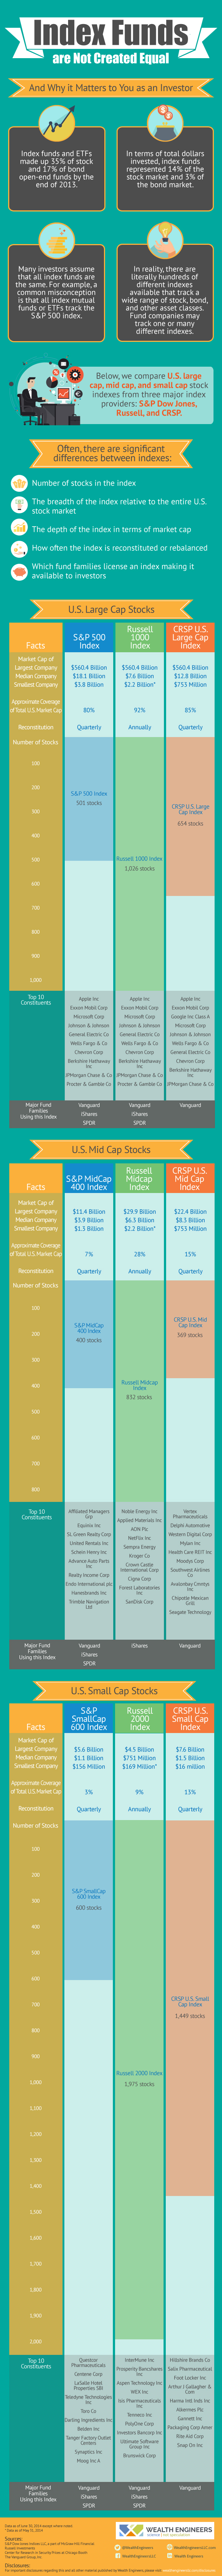 Infographic Index Funds are not Created Equal